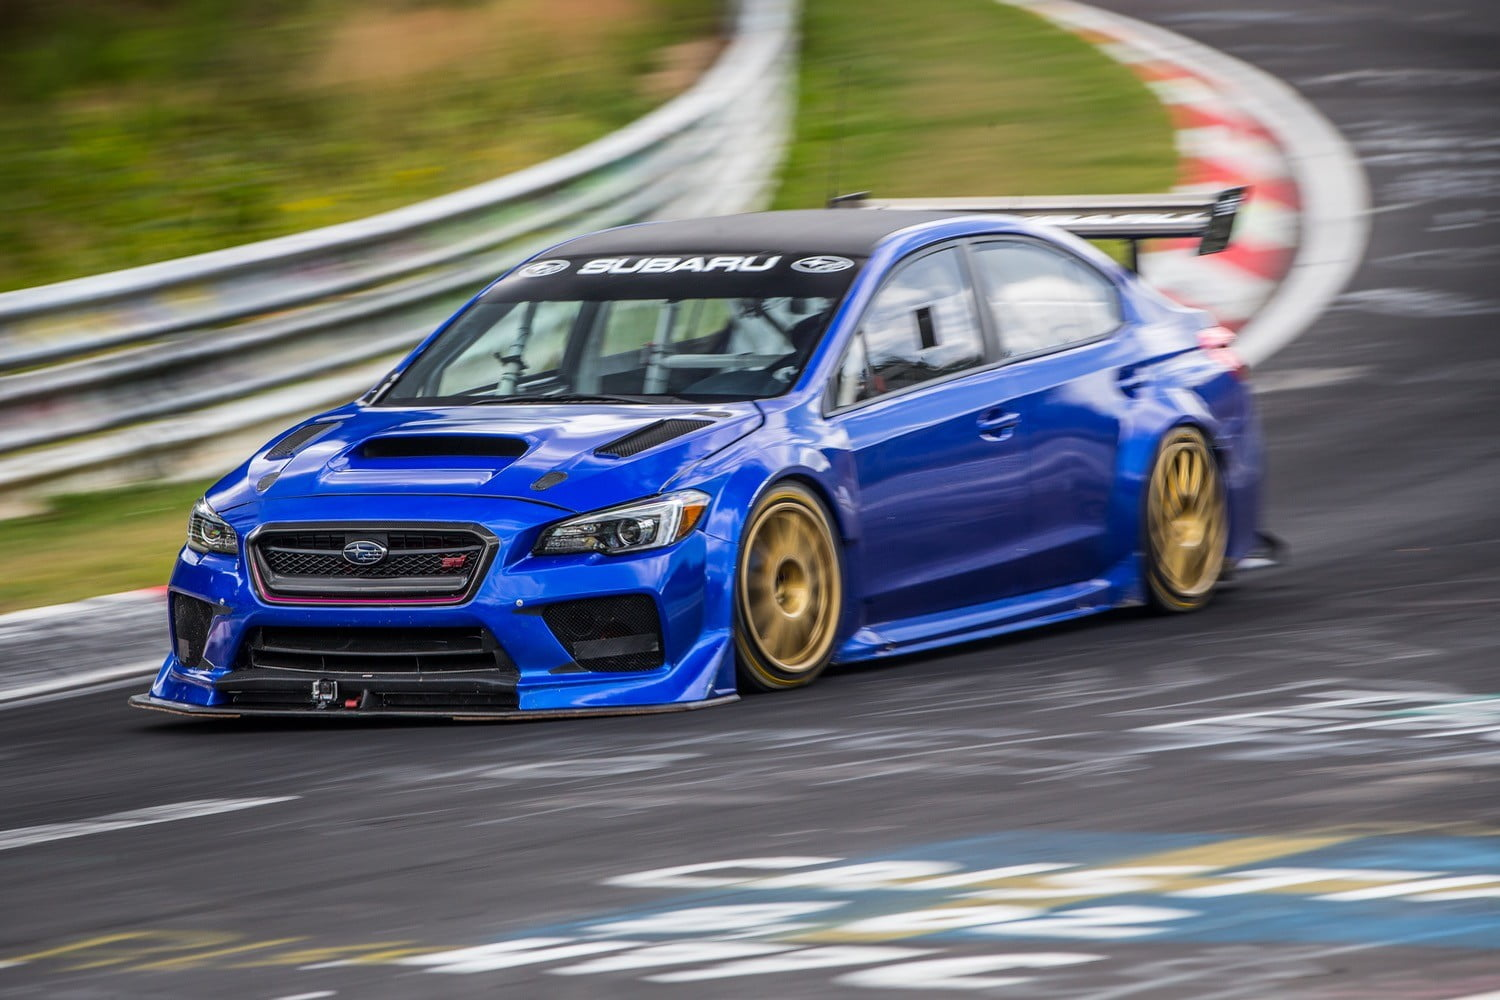 The Best Tuner Cars for 2019 | Modified Cars, Performance